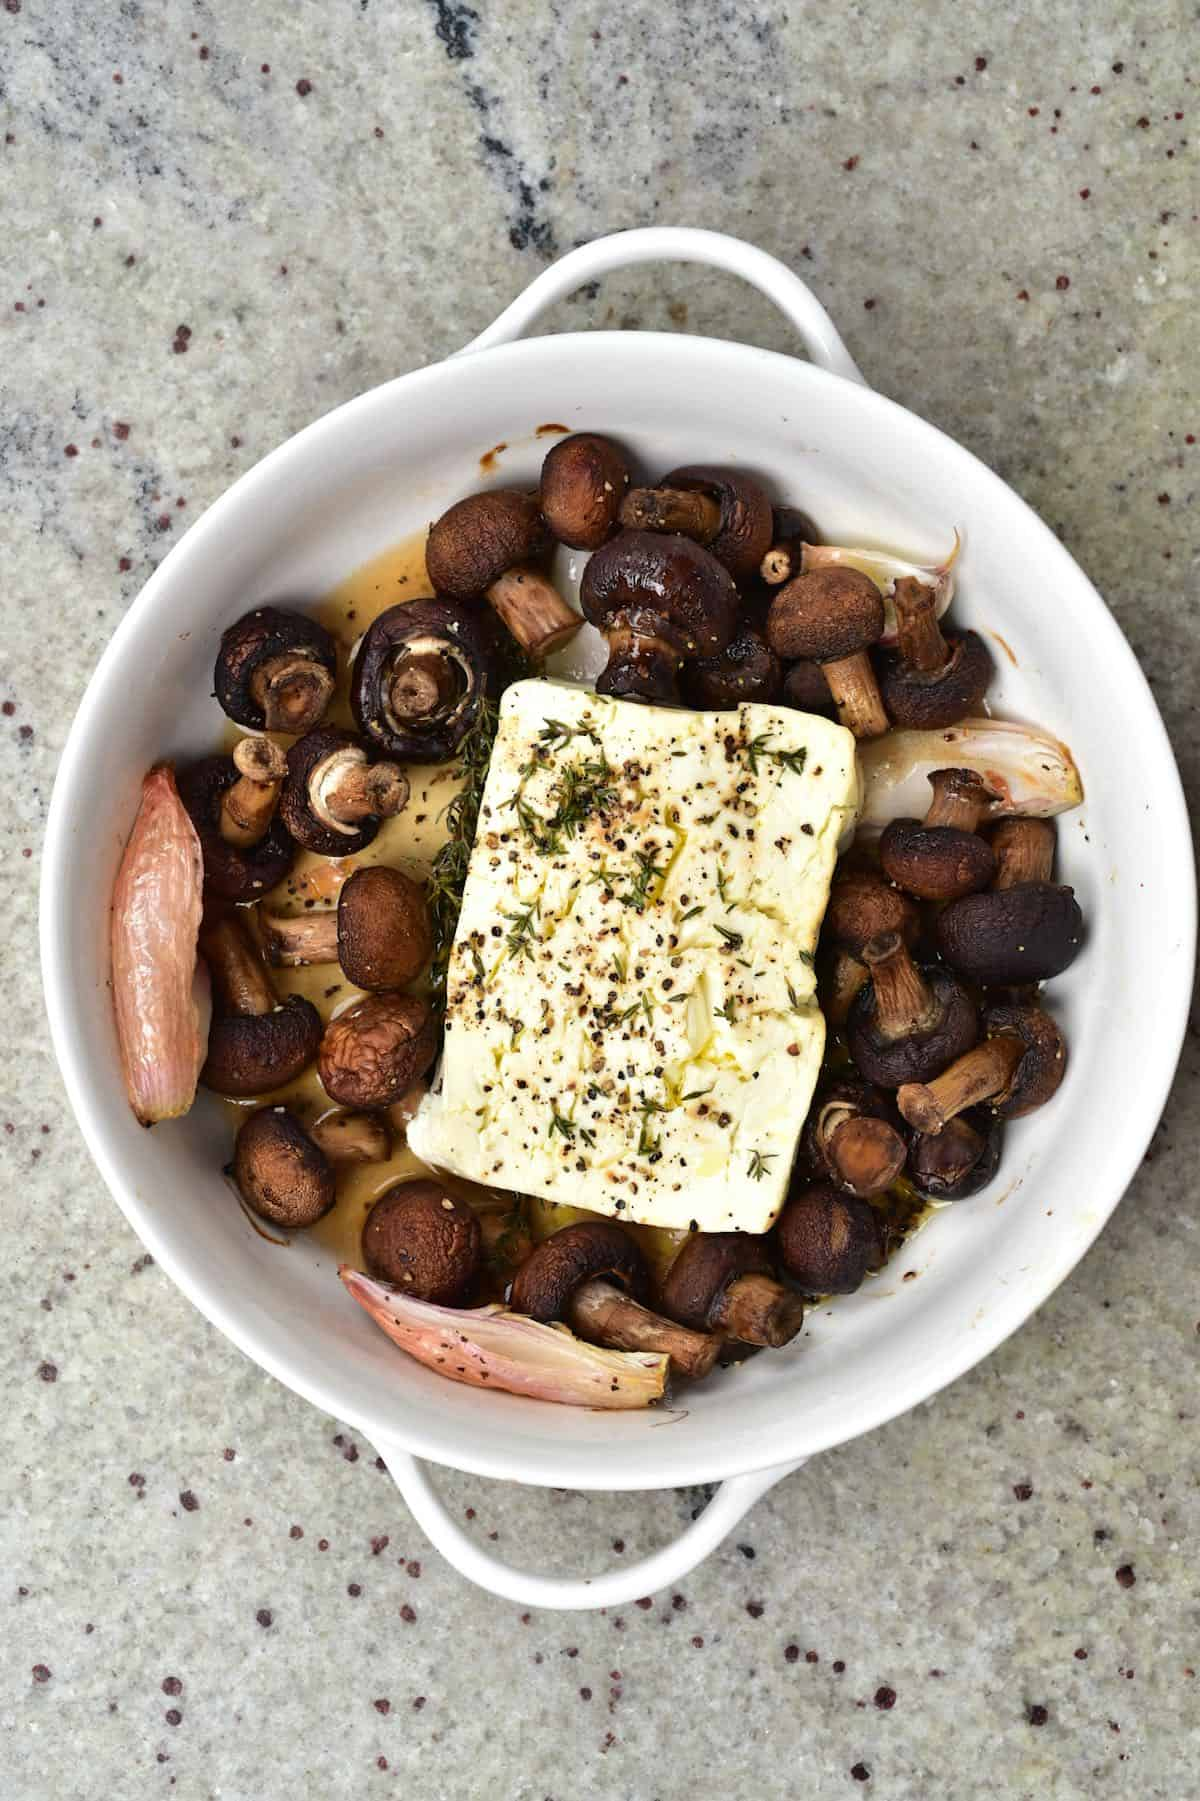 Baked Feta and Mushrooms in a oven dish